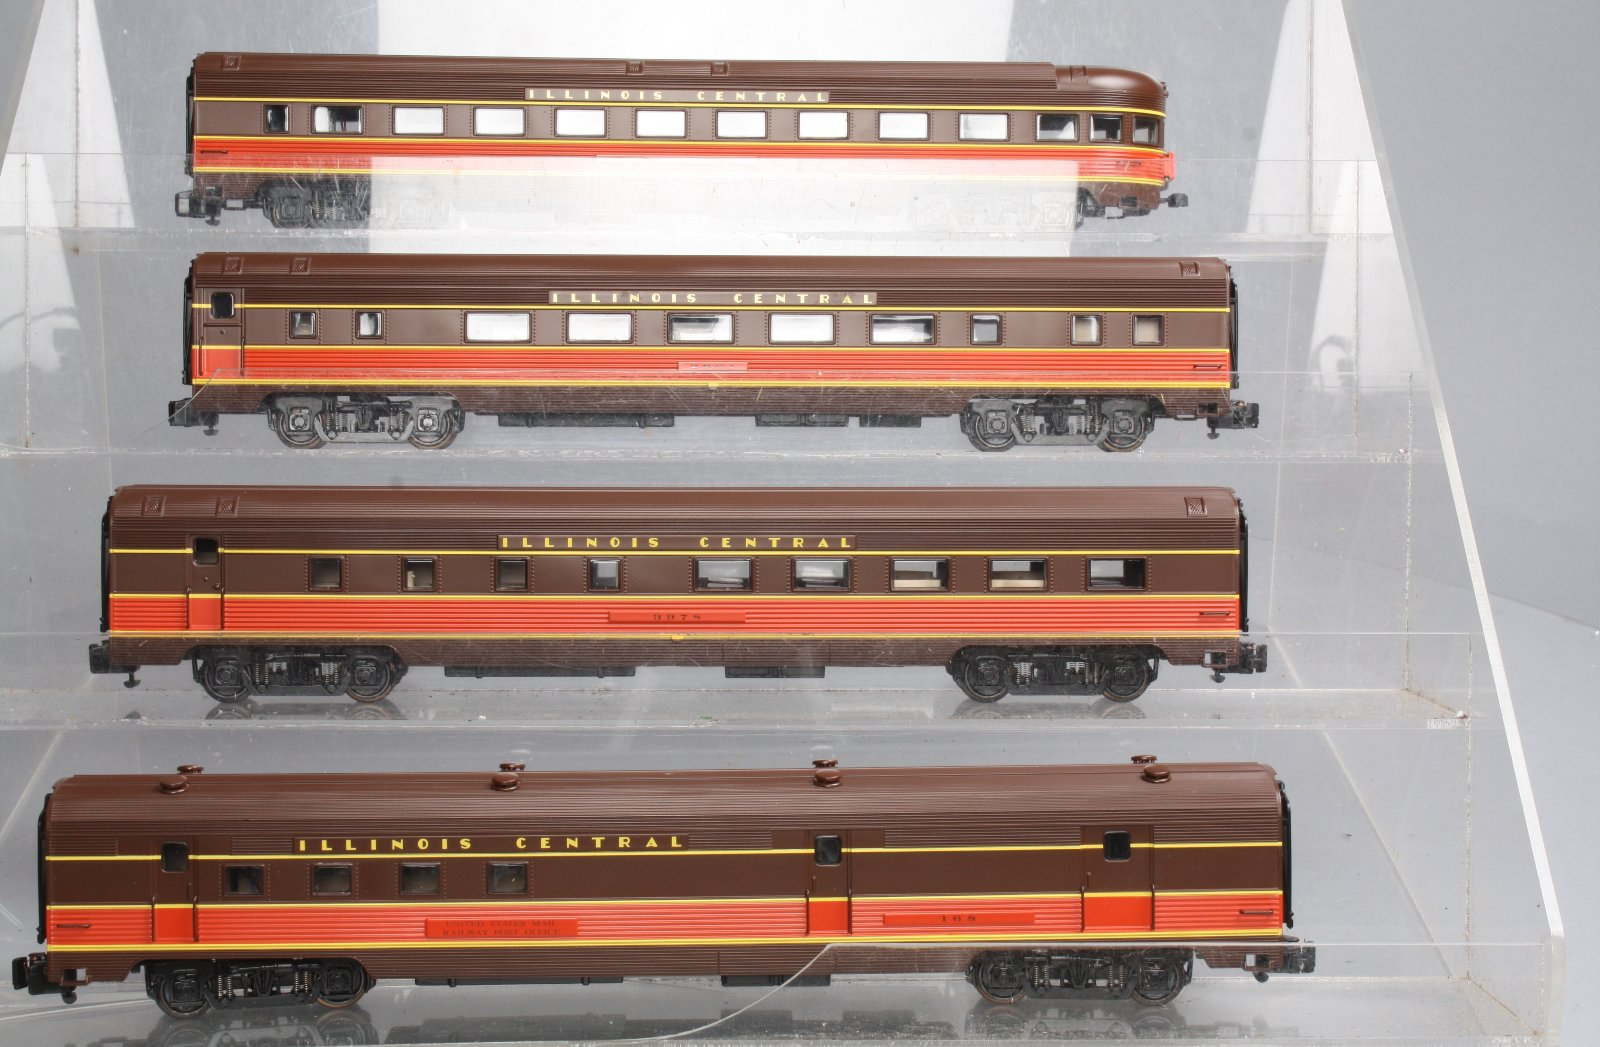 American Models BDBS17 S Scale Illinois Central Passenger Car Set (4